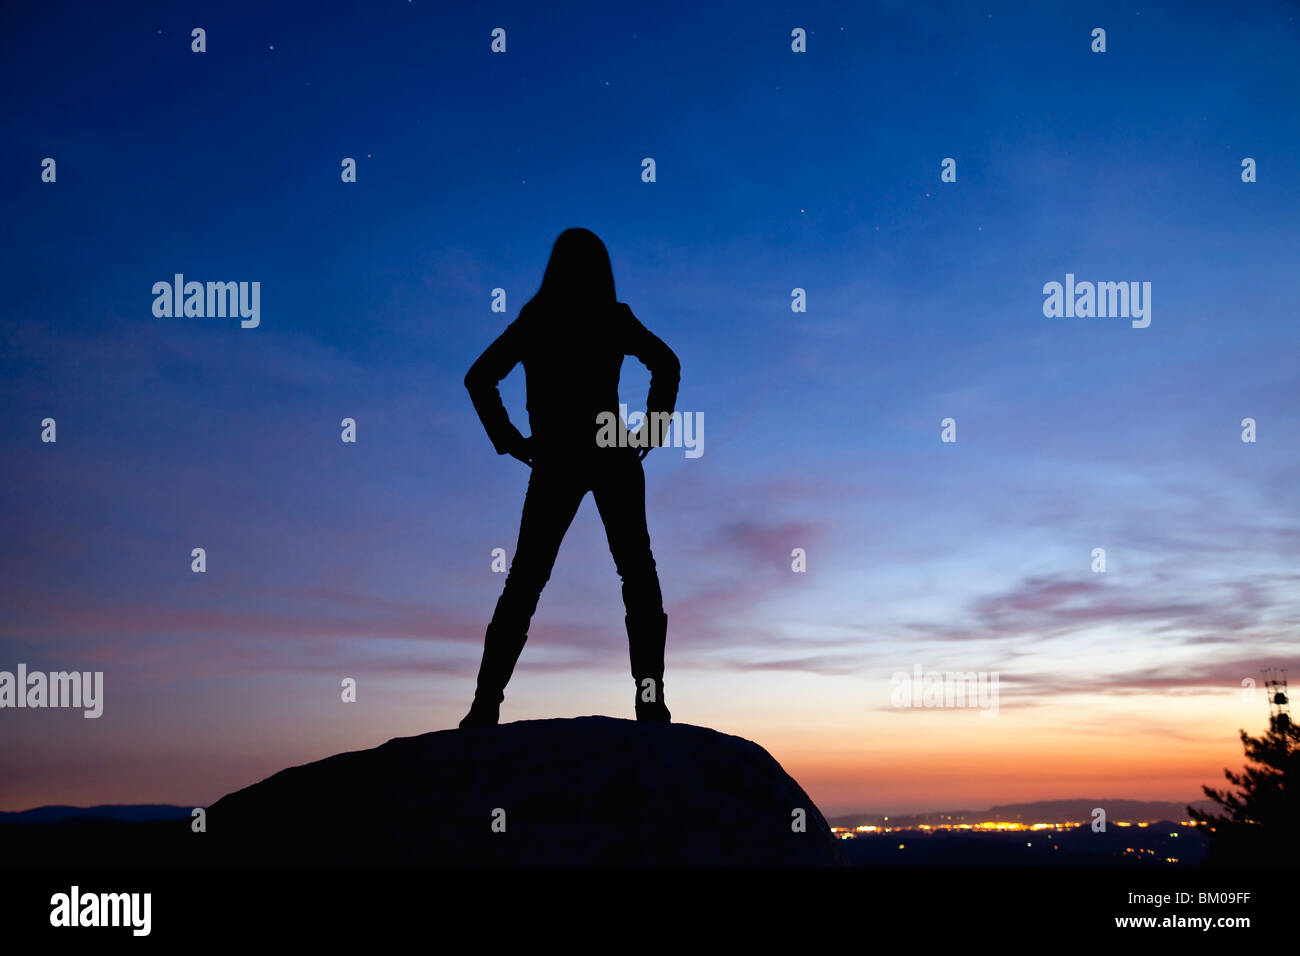 Silhouette of a woman standing on a rock at night overlooking the city lights Stock Photo